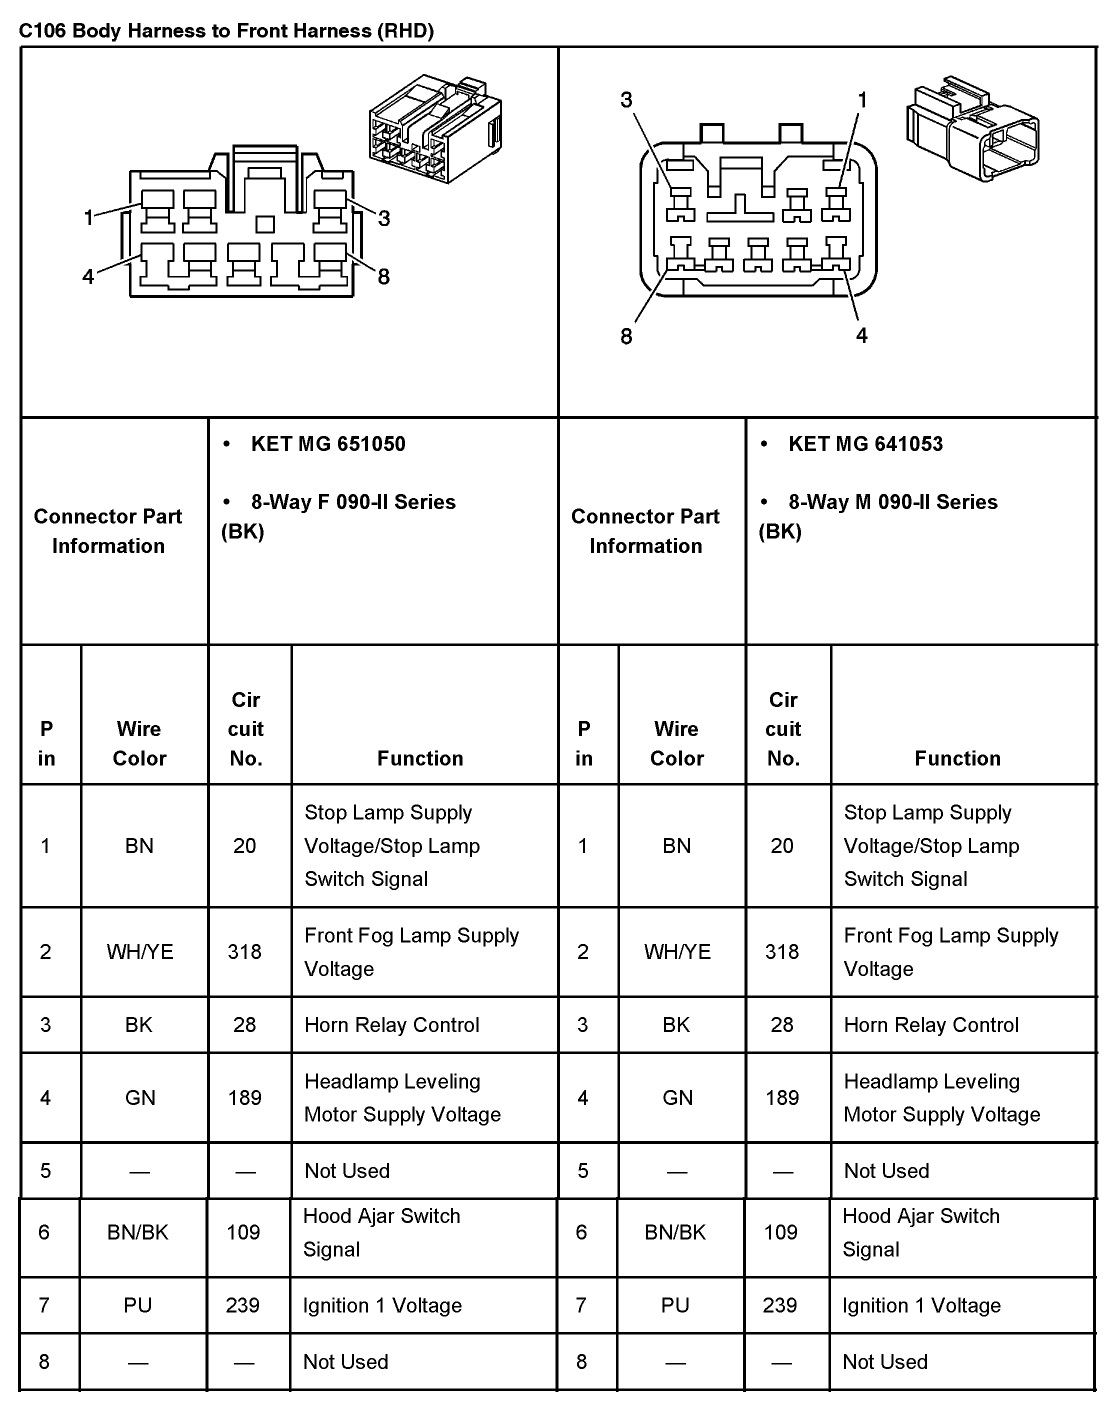 7331d1383704576 2005 aveo master connector list diagrams conn3 jpg 2005 chevy aveo fuse box wiring diagram simonand 2004 Chevy Aveo Parts Diagram at bayanpartner.co